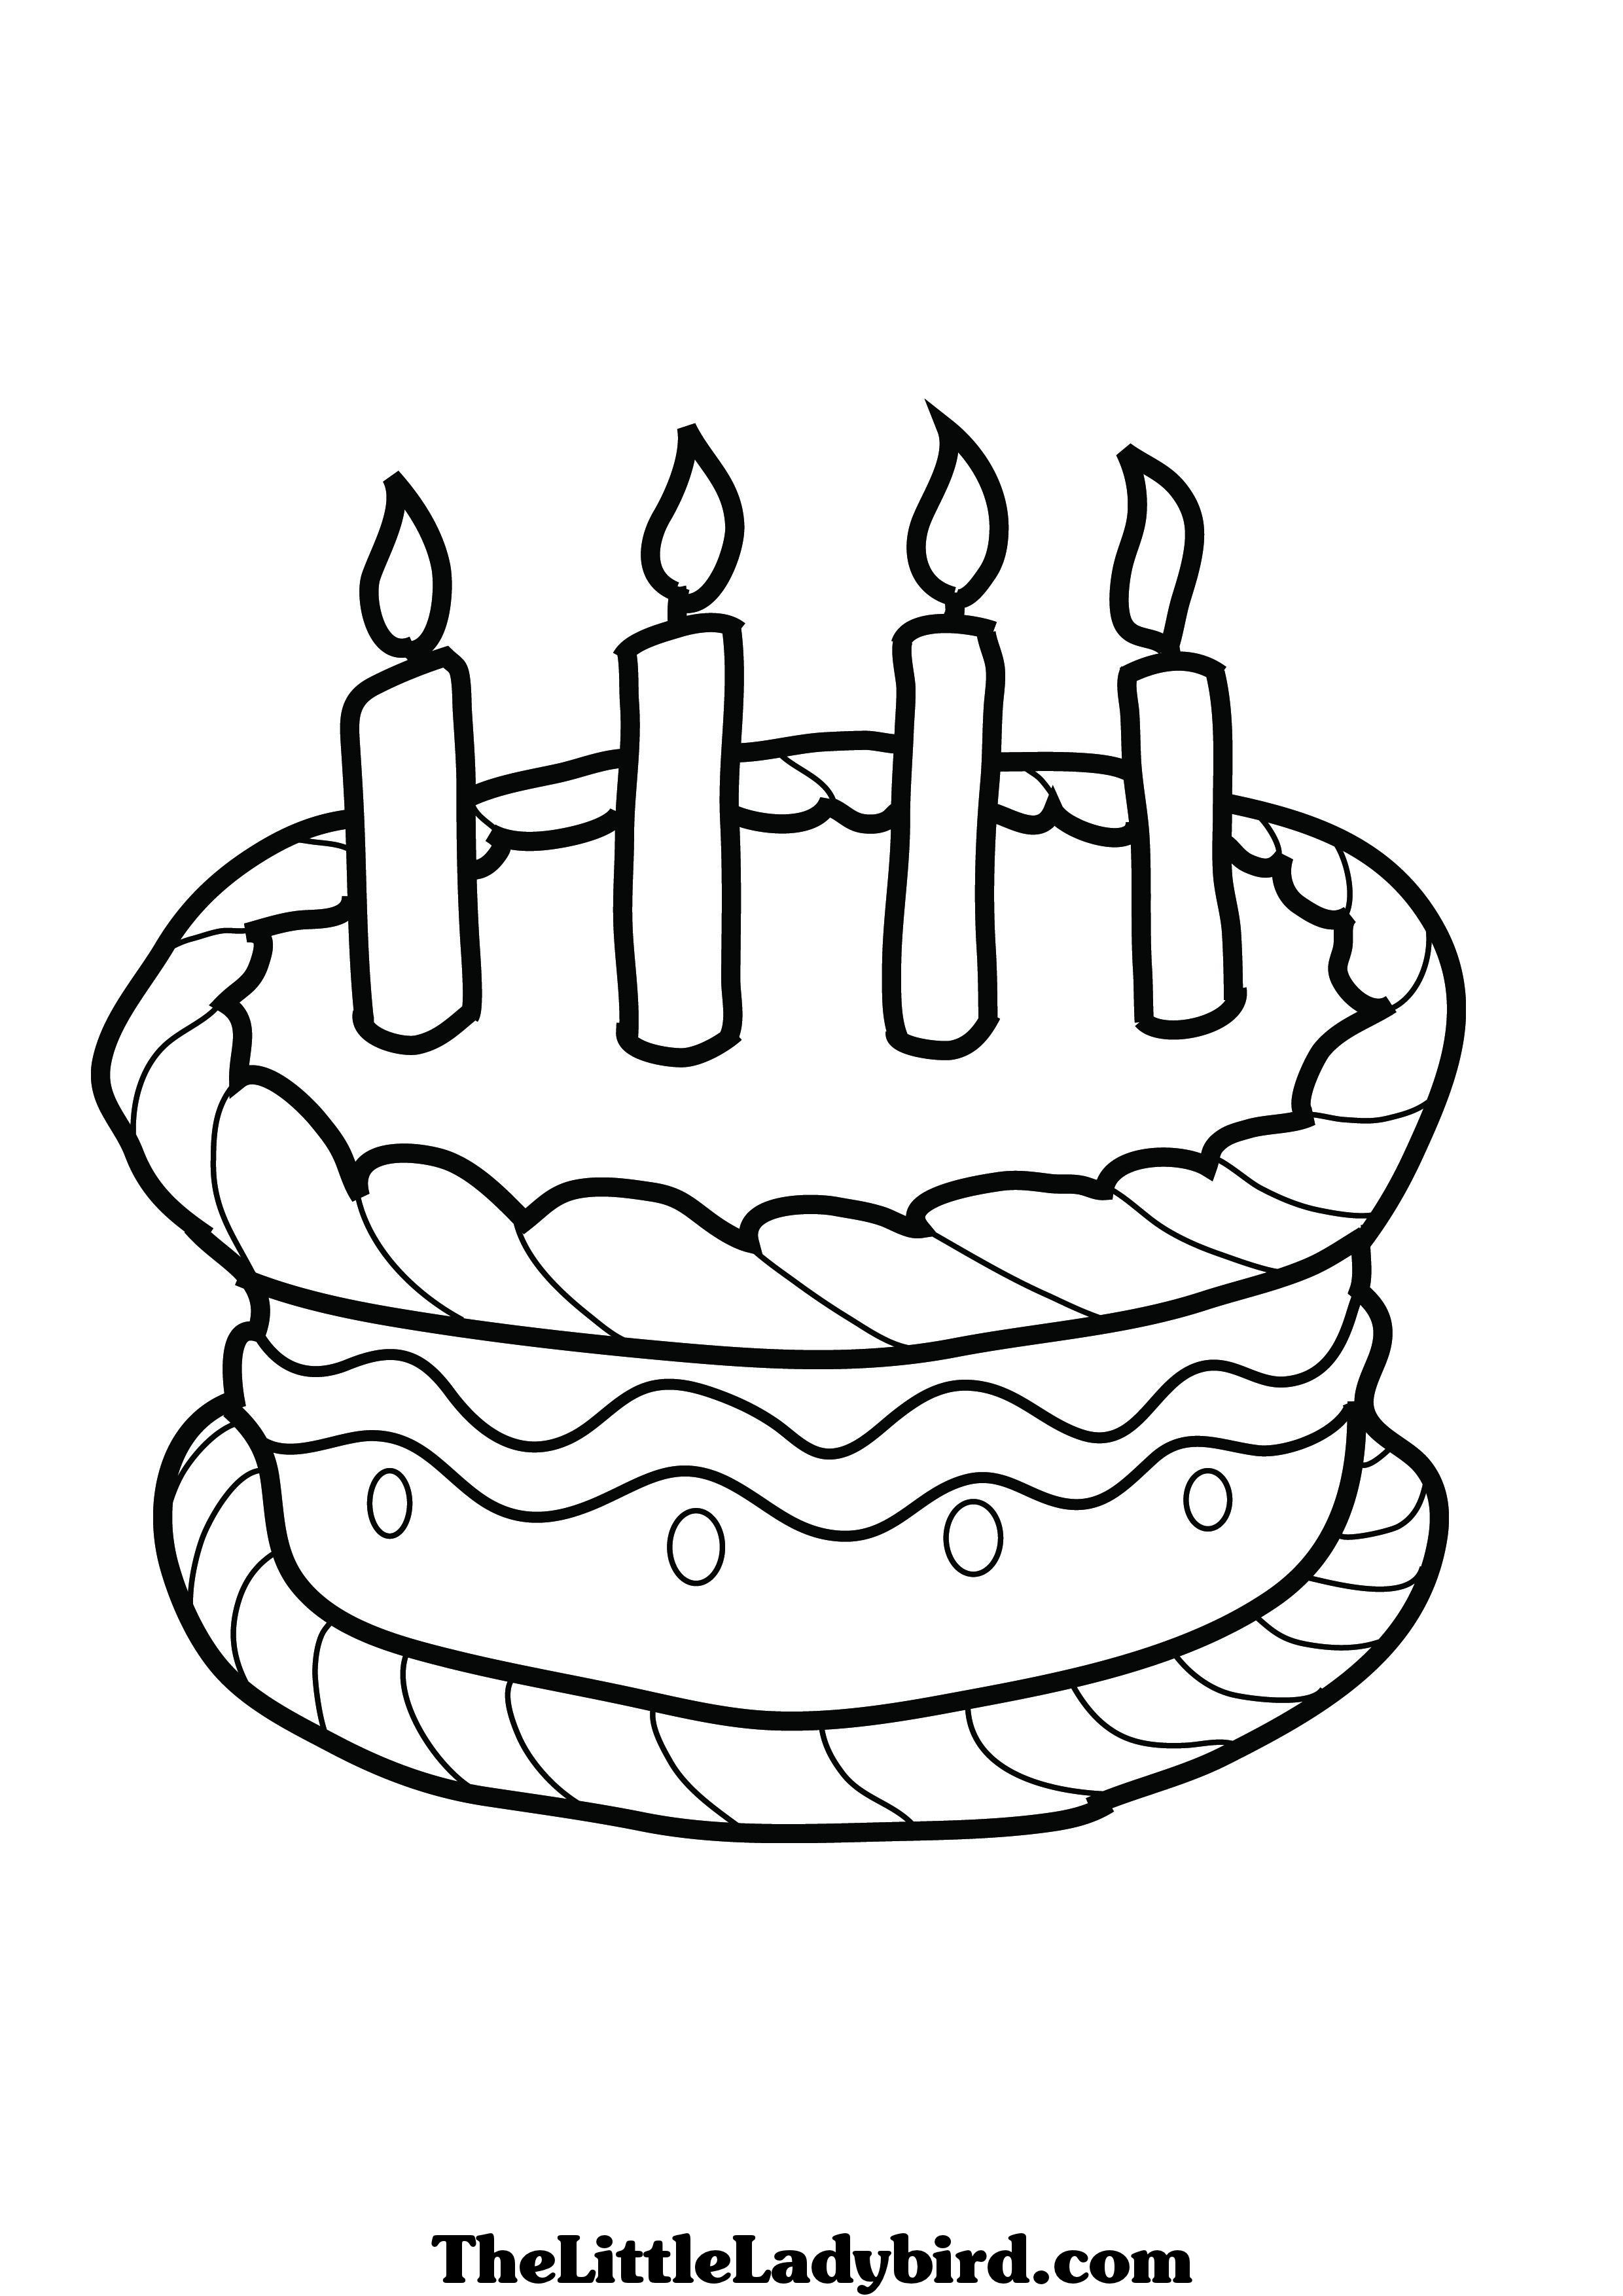 2480x3508 Coloring Pages Birthday Cake To Color Cute Page